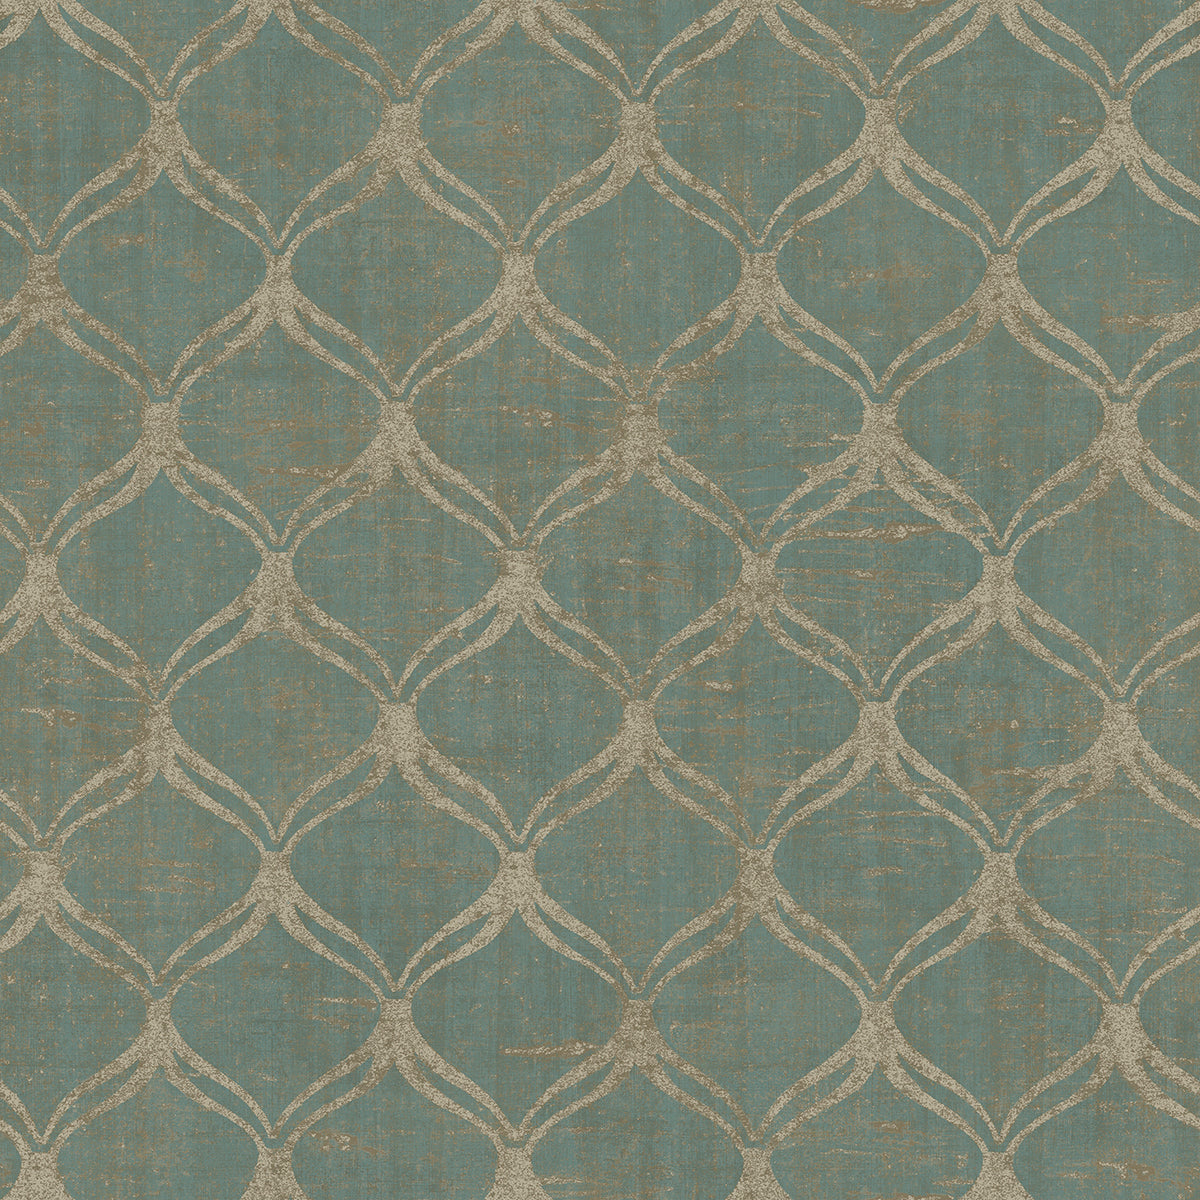 Bowery Teal Ogee Wallpaper